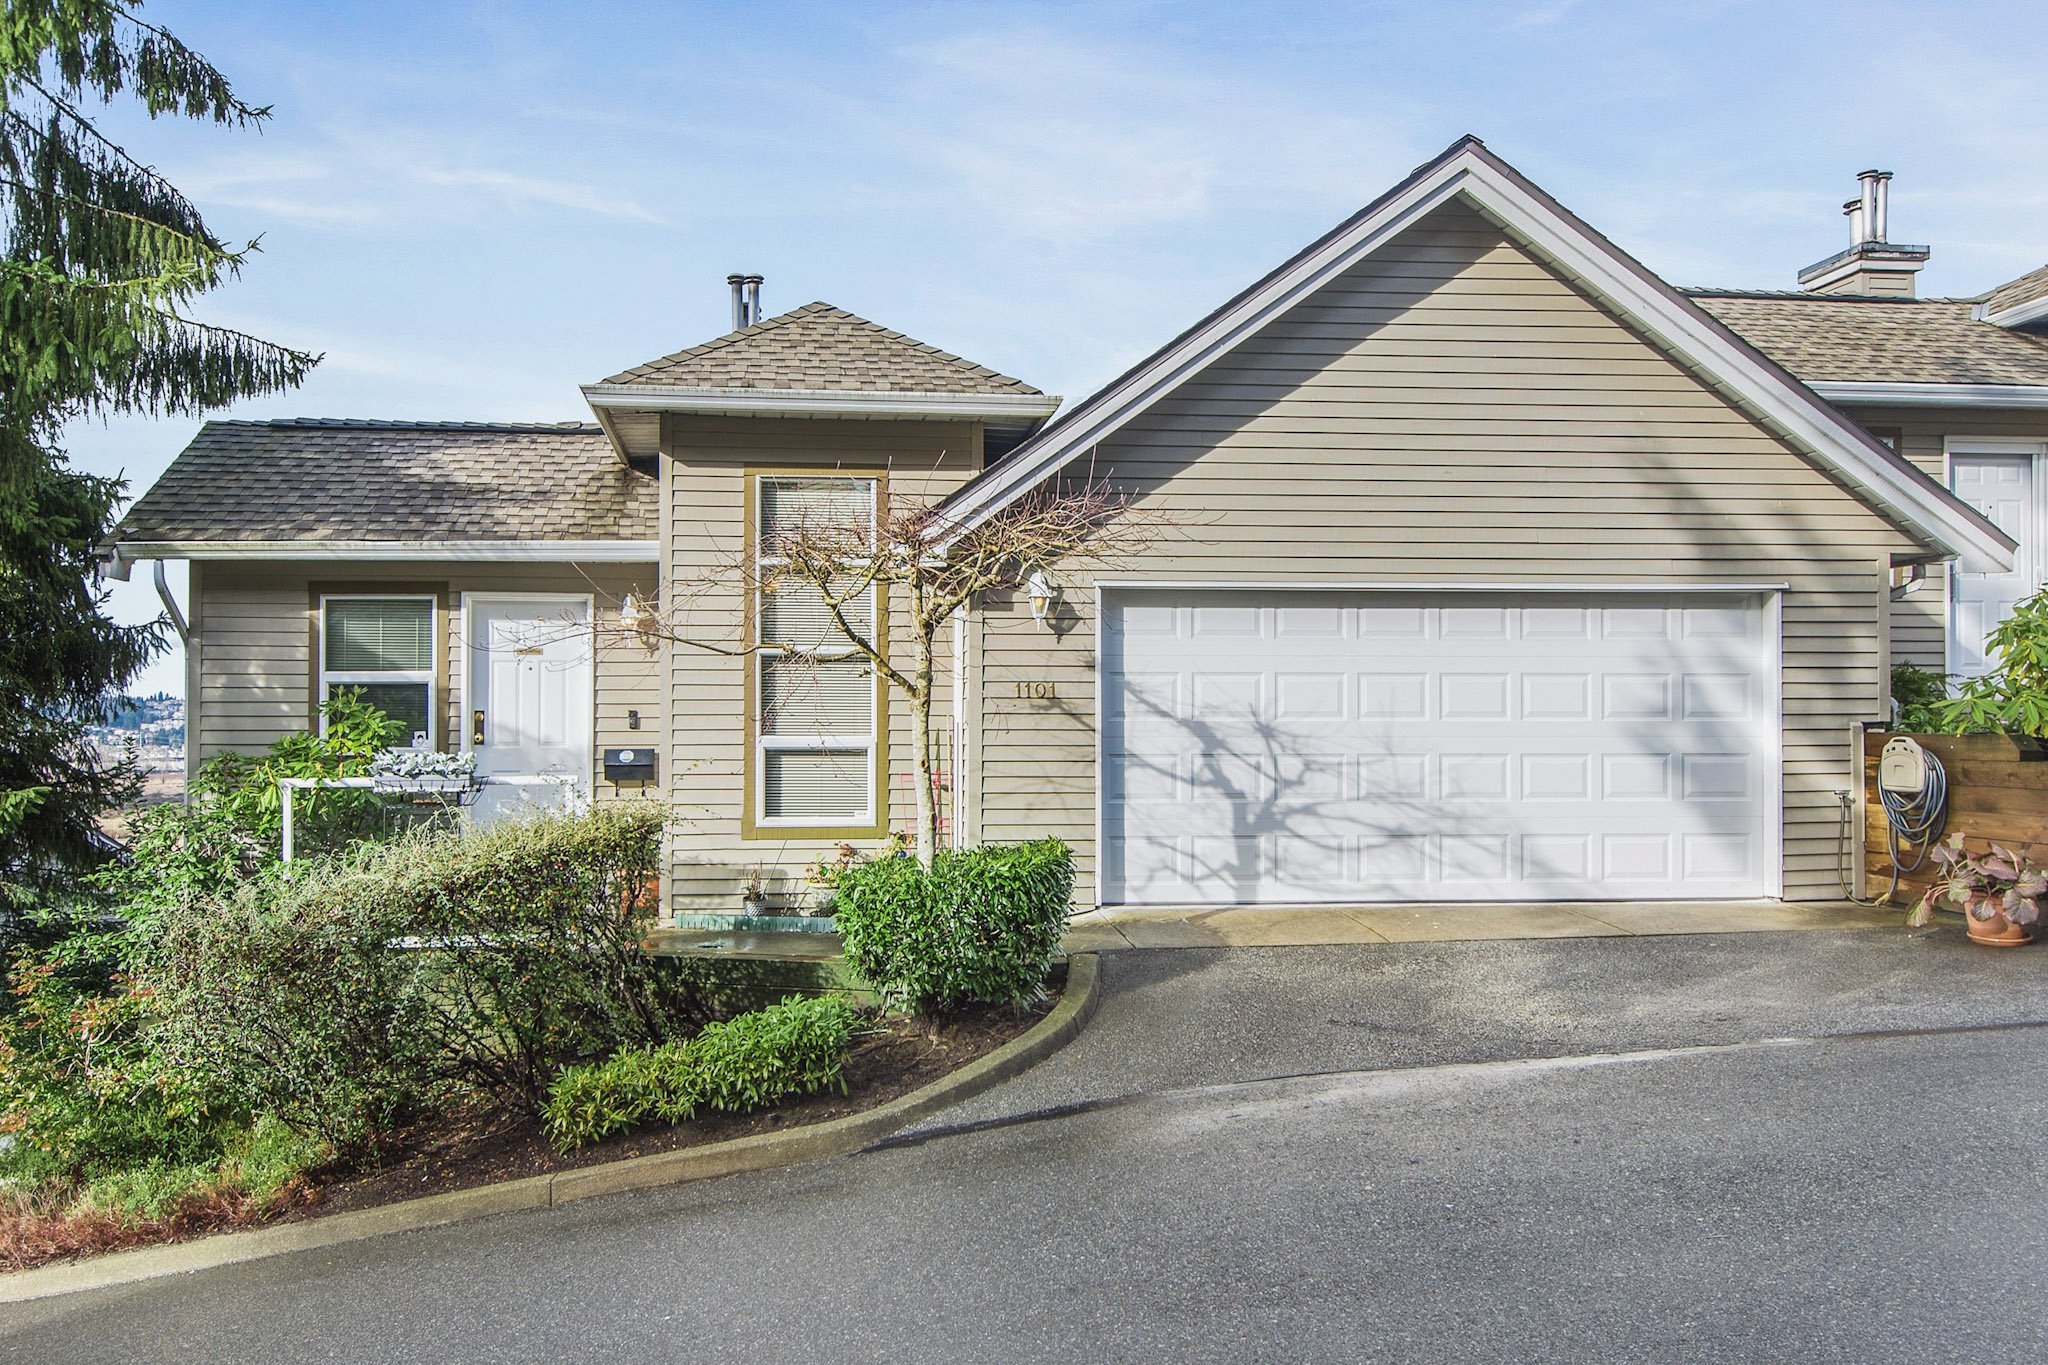 """Main Photo: 1101 BENNET Drive in Port Coquitlam: Citadel PQ Townhouse for sale in """"The Summit"""" : MLS®# R2235805"""